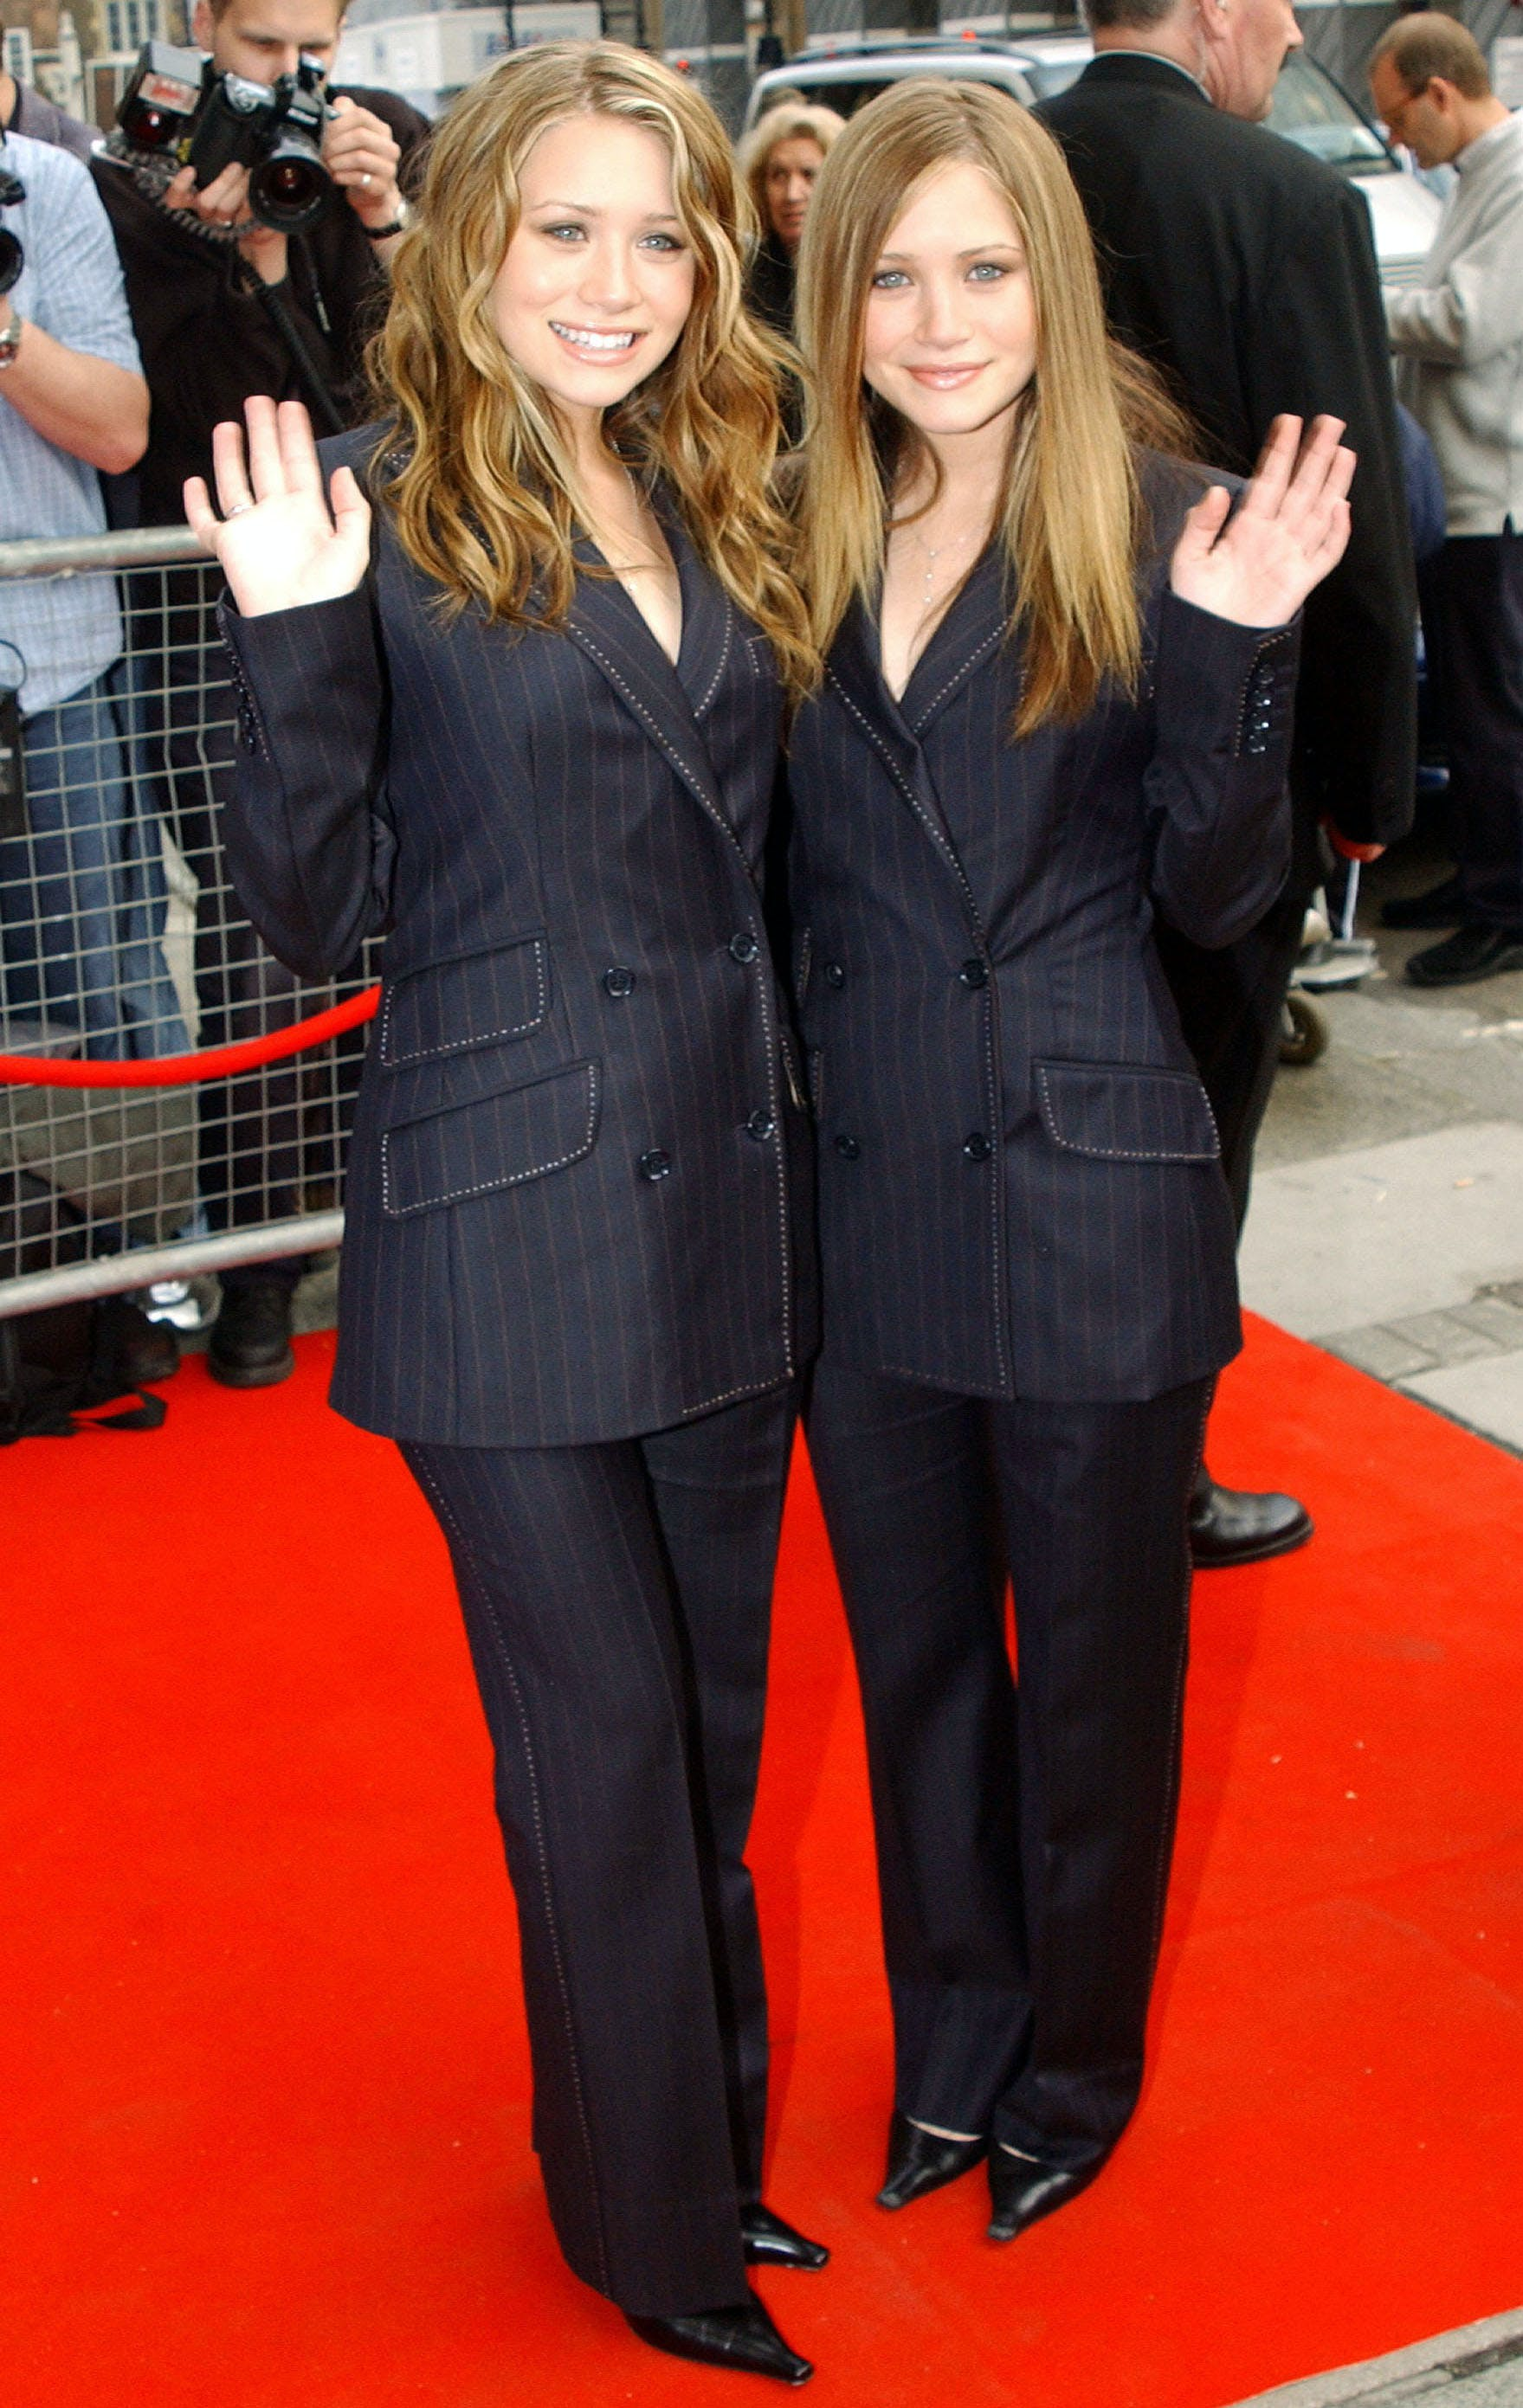 mary kate and ashley olsen wearing suits in 2002